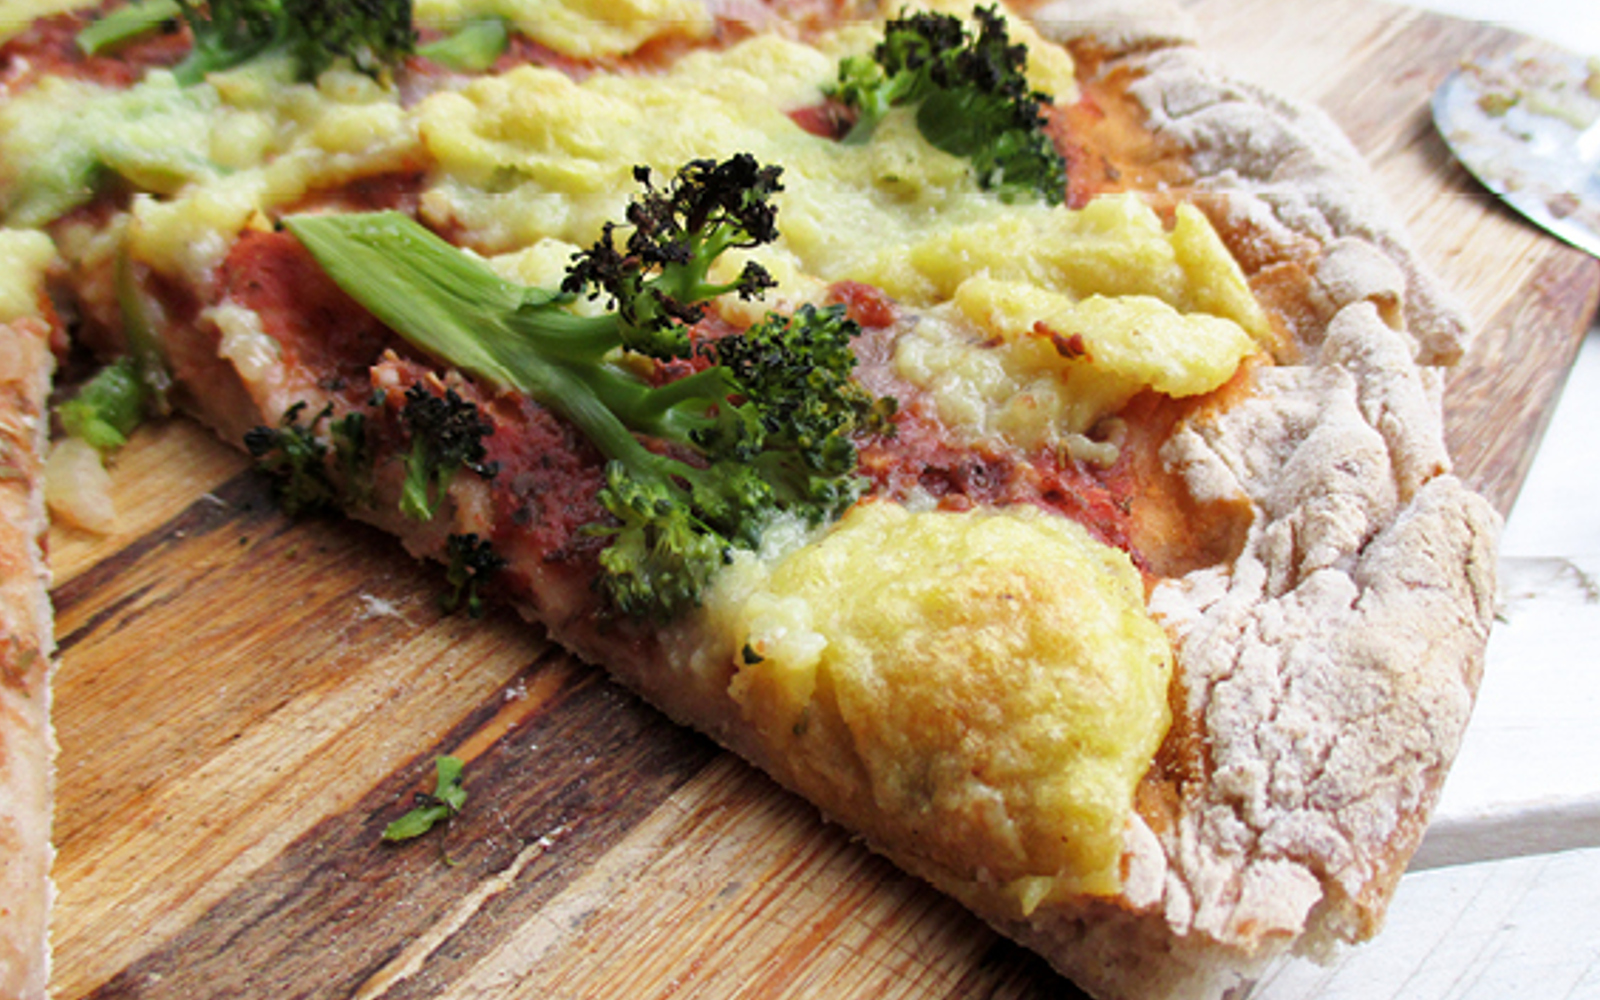 Gluten-Free Pizza Crust With Nut-Free Cheese